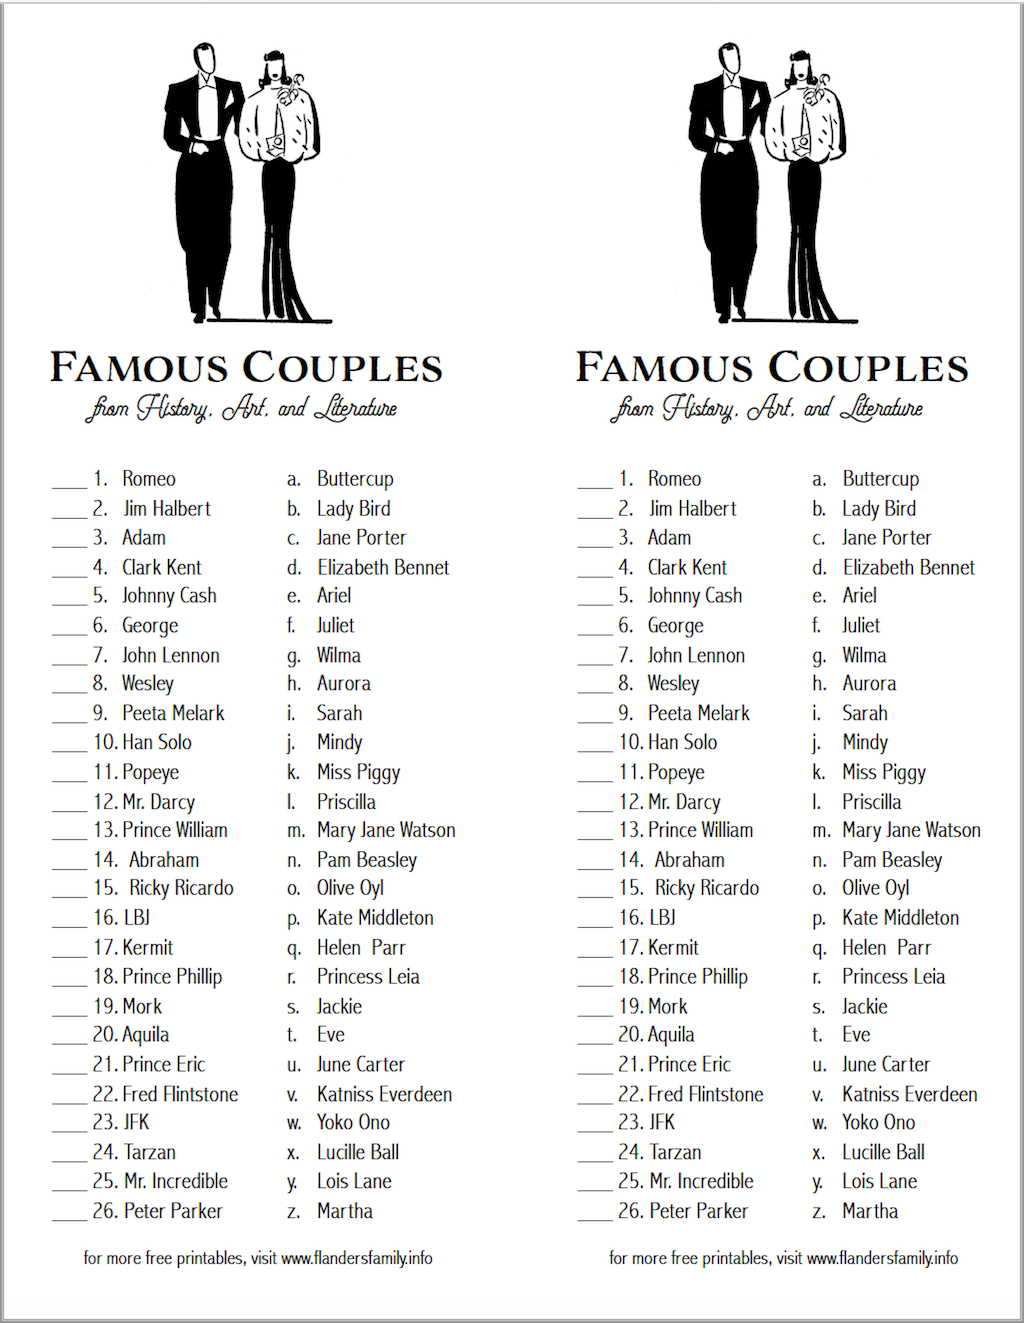 Can You Match These Famous Couples? (Free Printable) - Flanders - Free Printable Compatibility Test For Couples